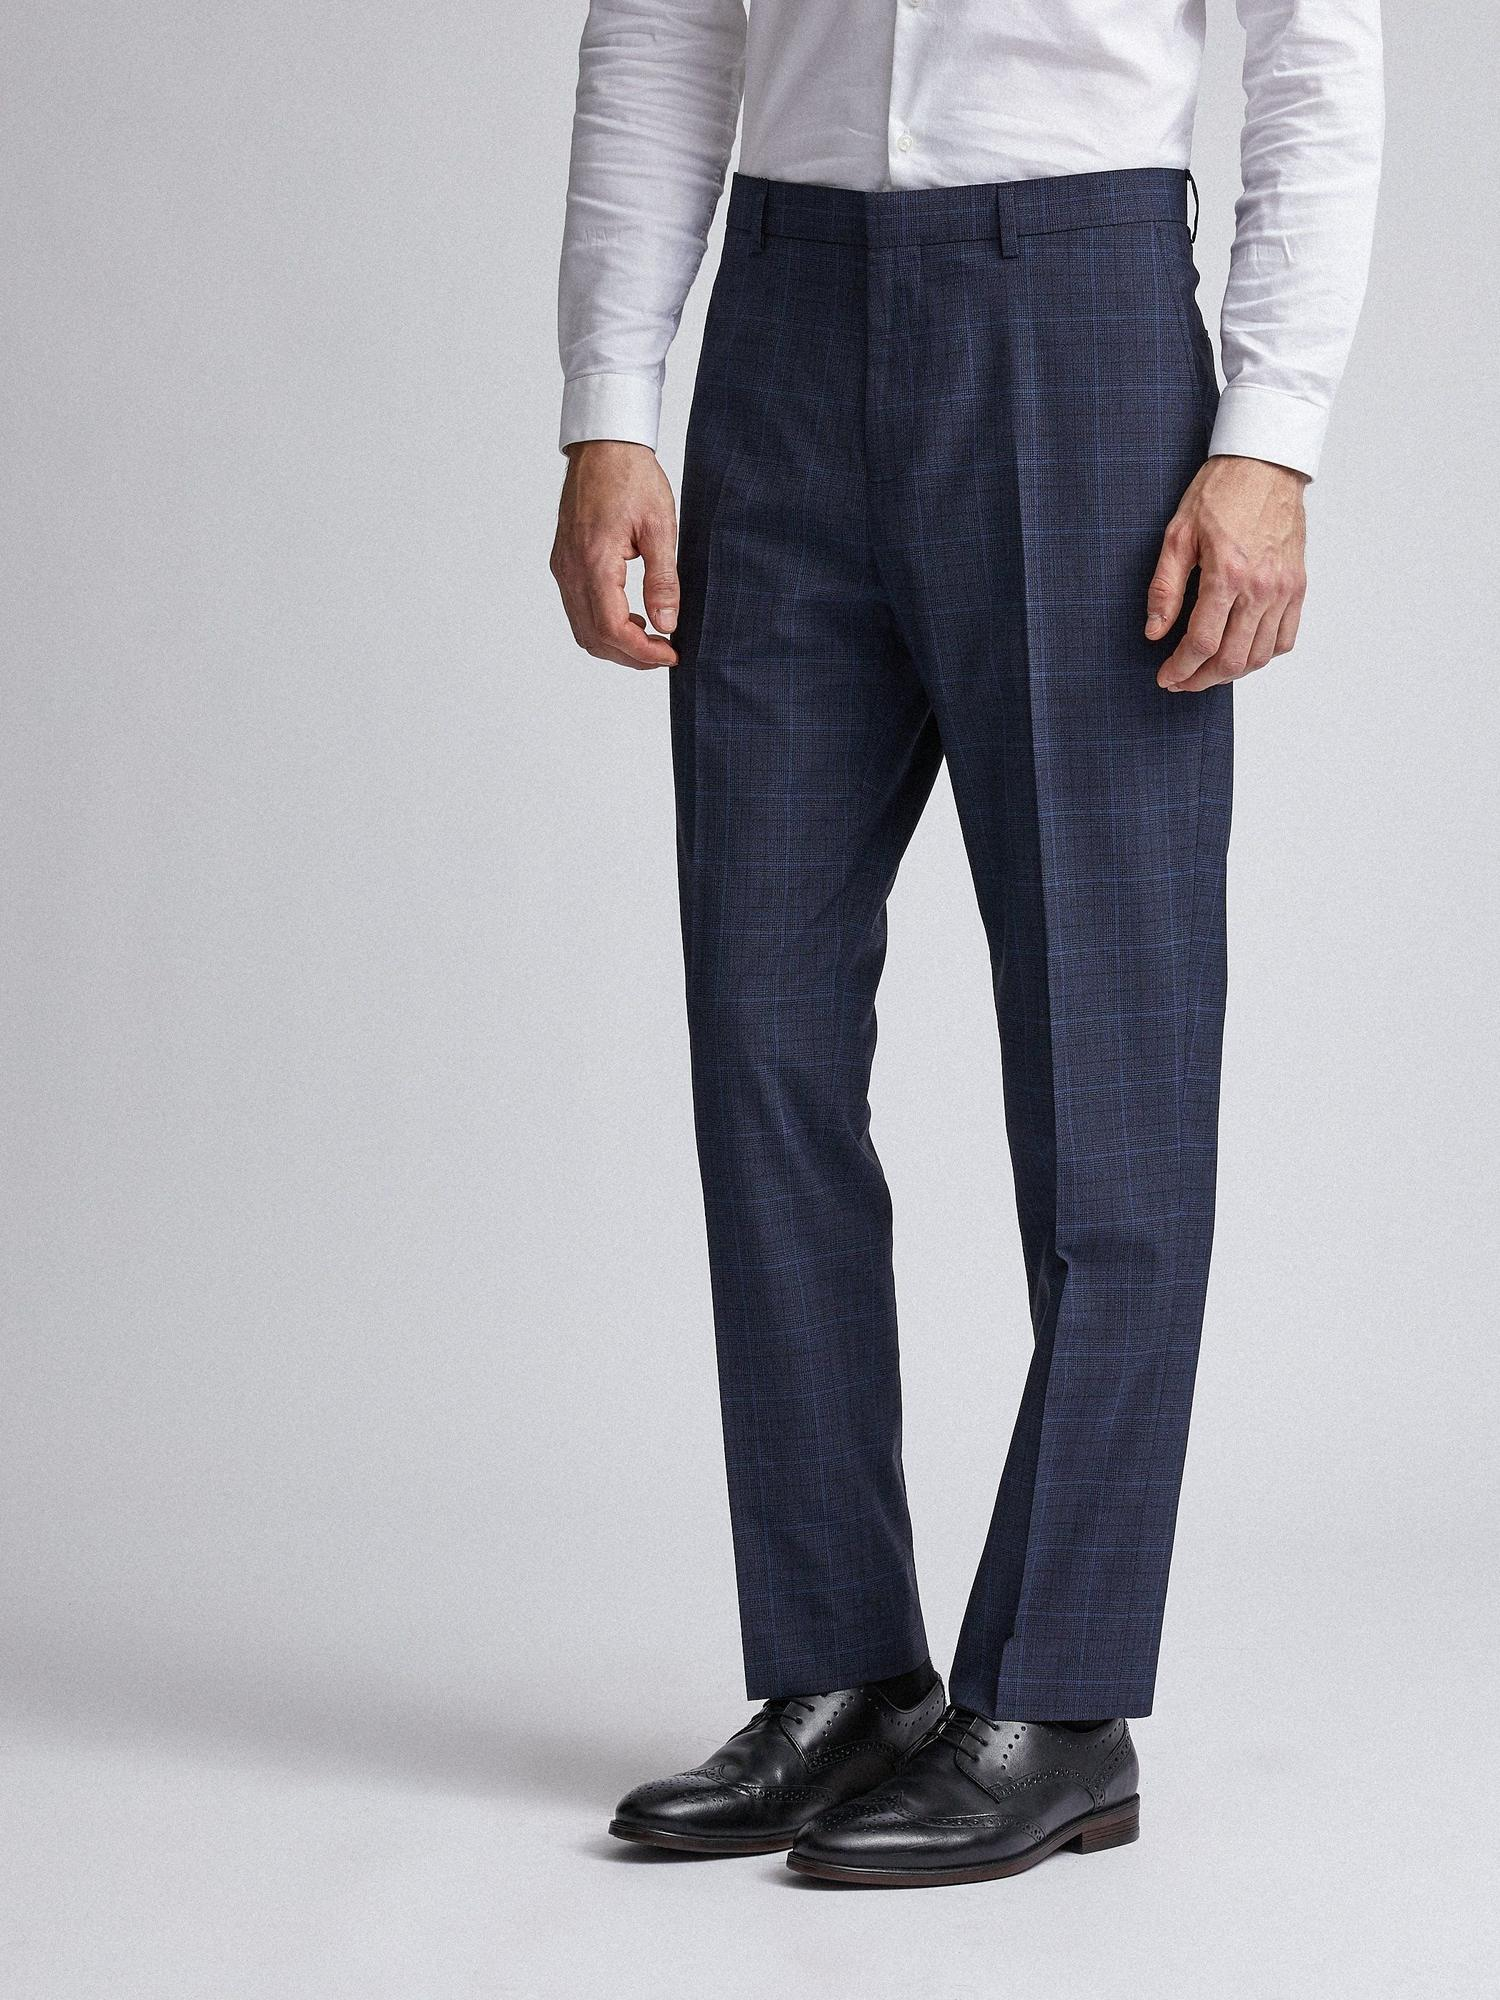 148 Navy Tonal Check Tailored Fit Suit Trousers image number 1